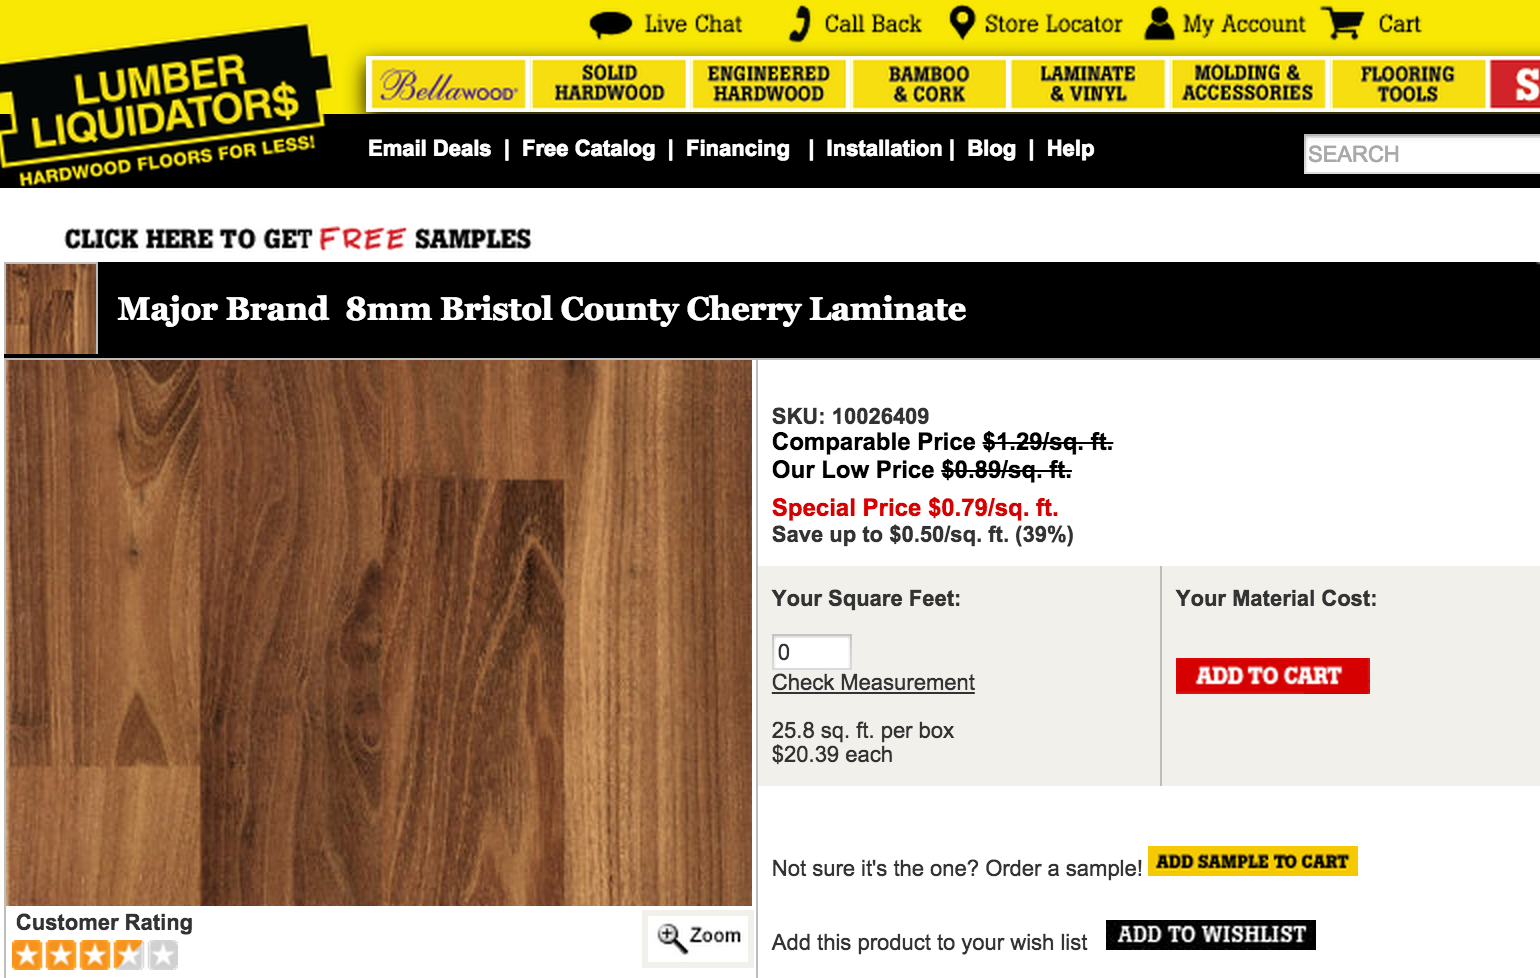 Lumber Liquidators Sued Over Formaldehyde Allegations